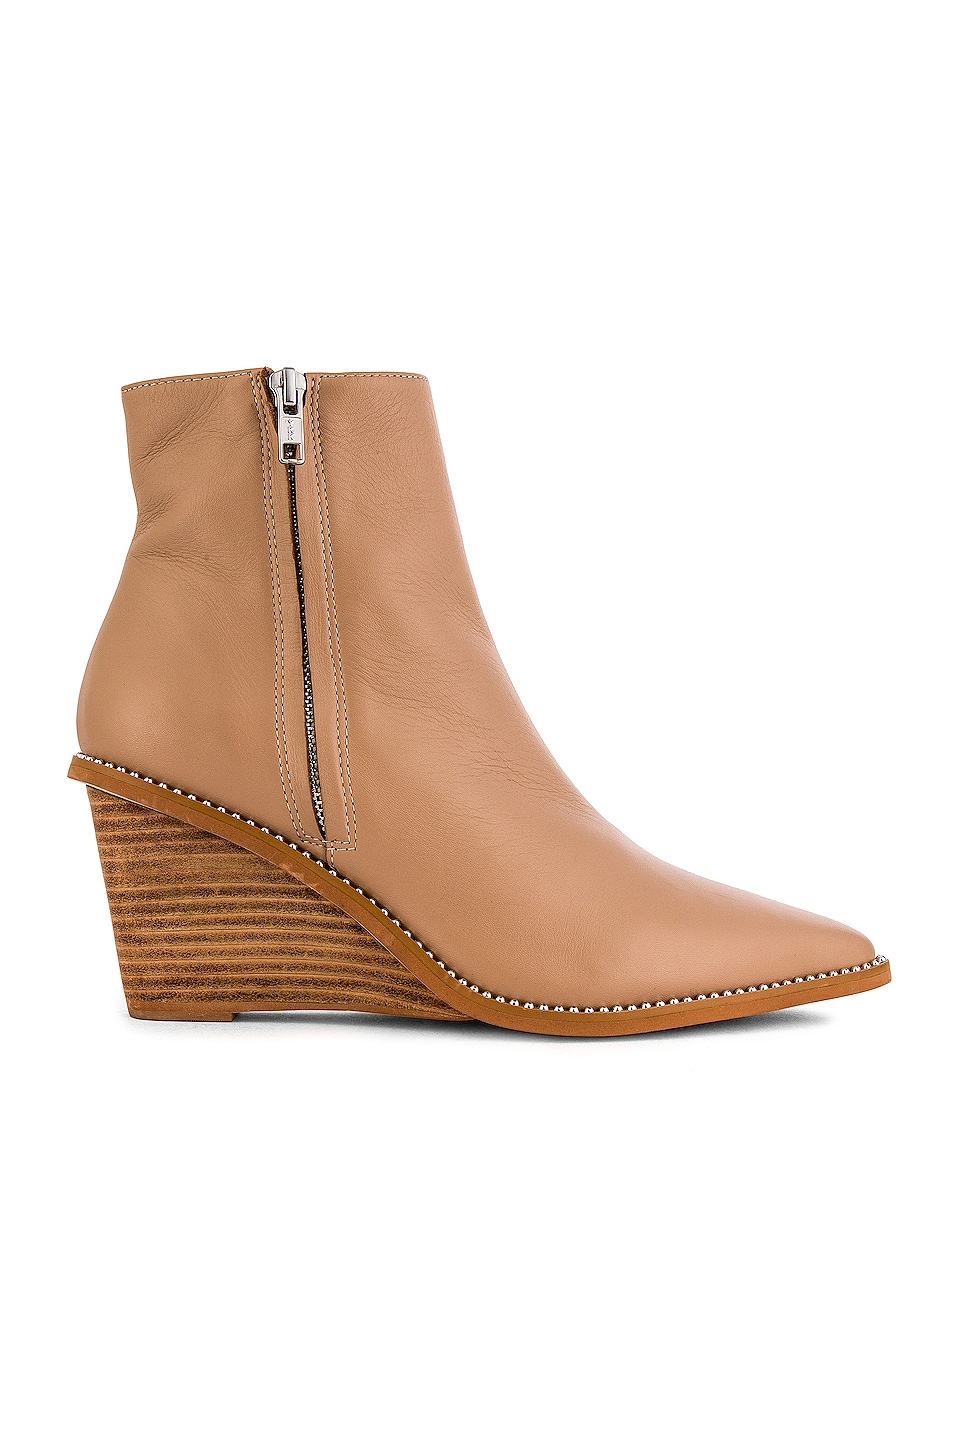 Caverley Robbie Wedge Boot in Taupe